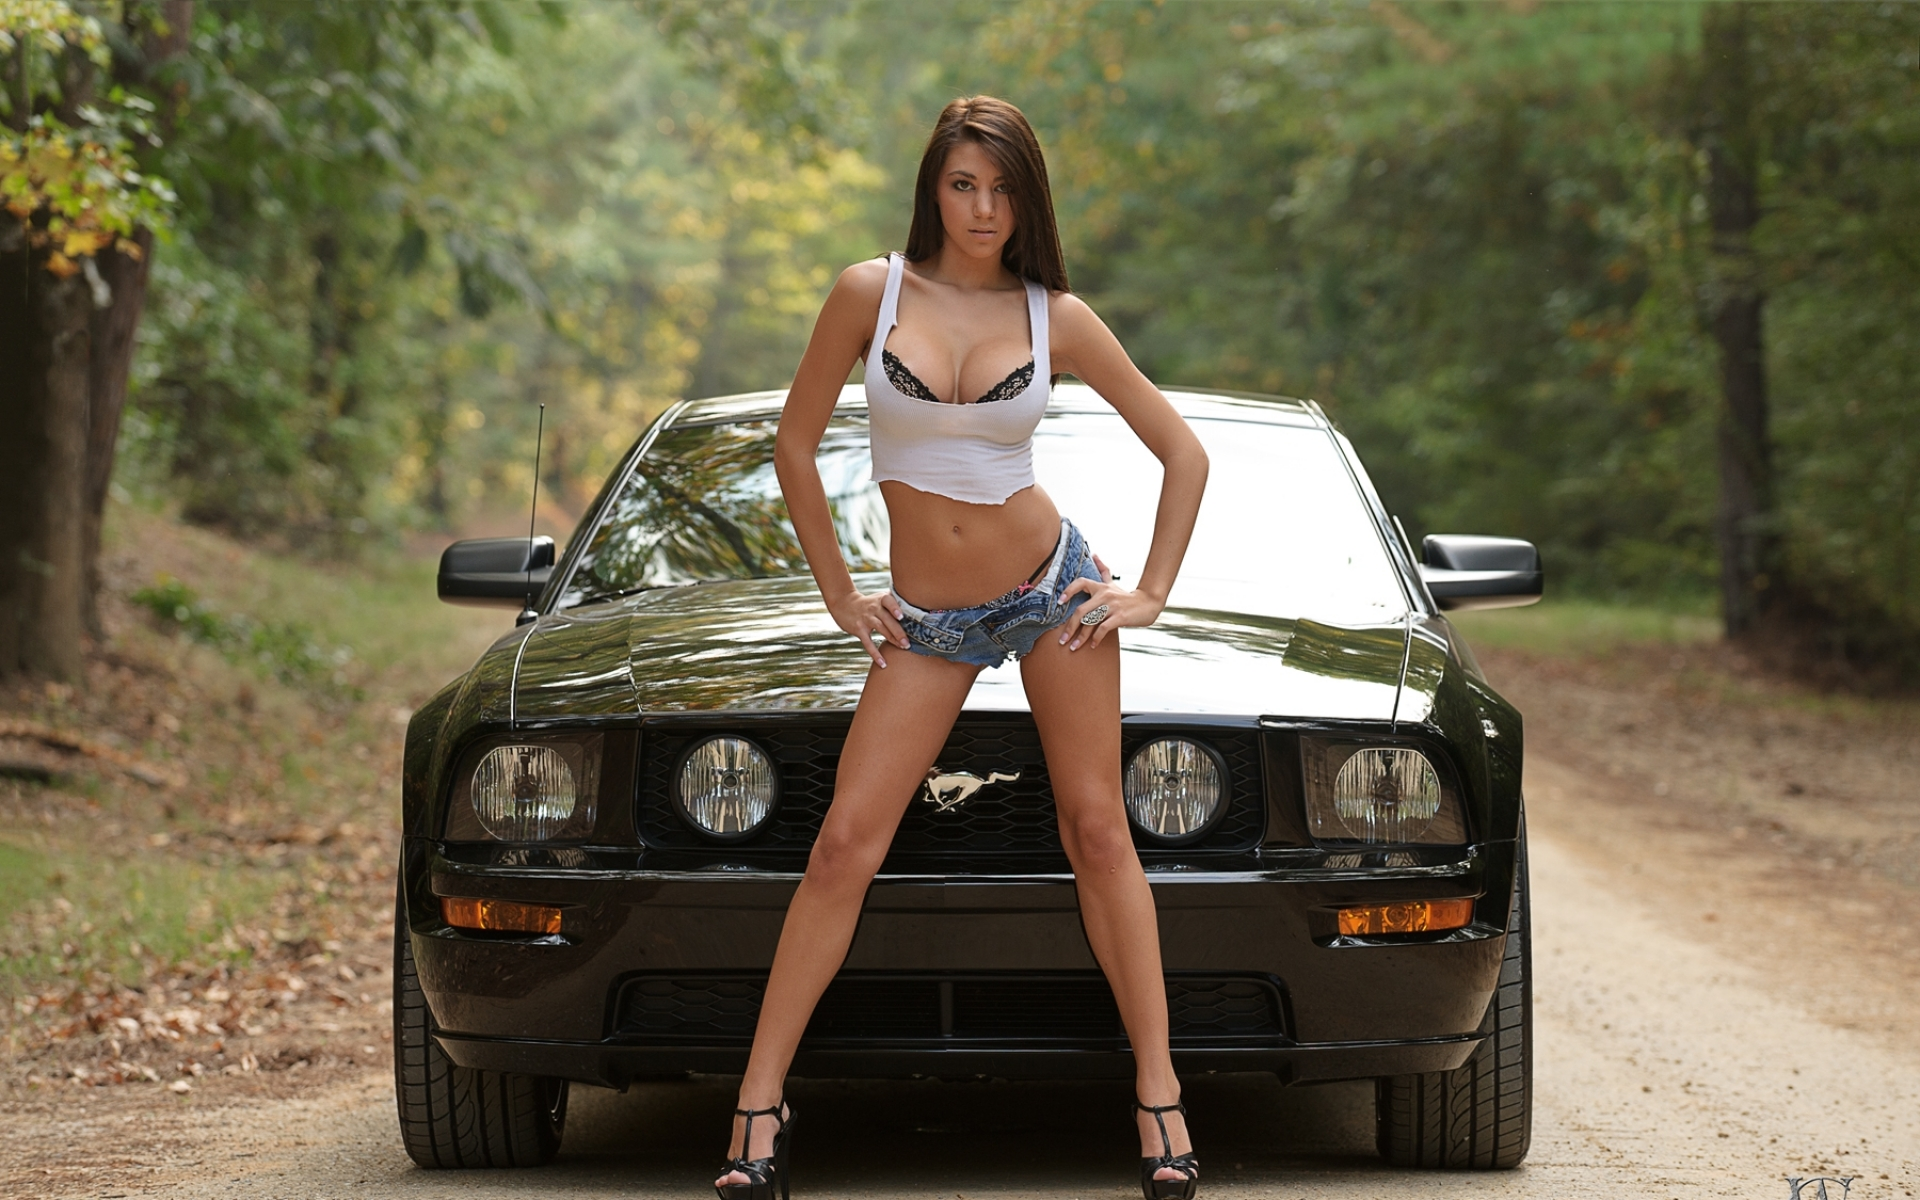 women trees cars cleavage high heels ford mustang denim shorts